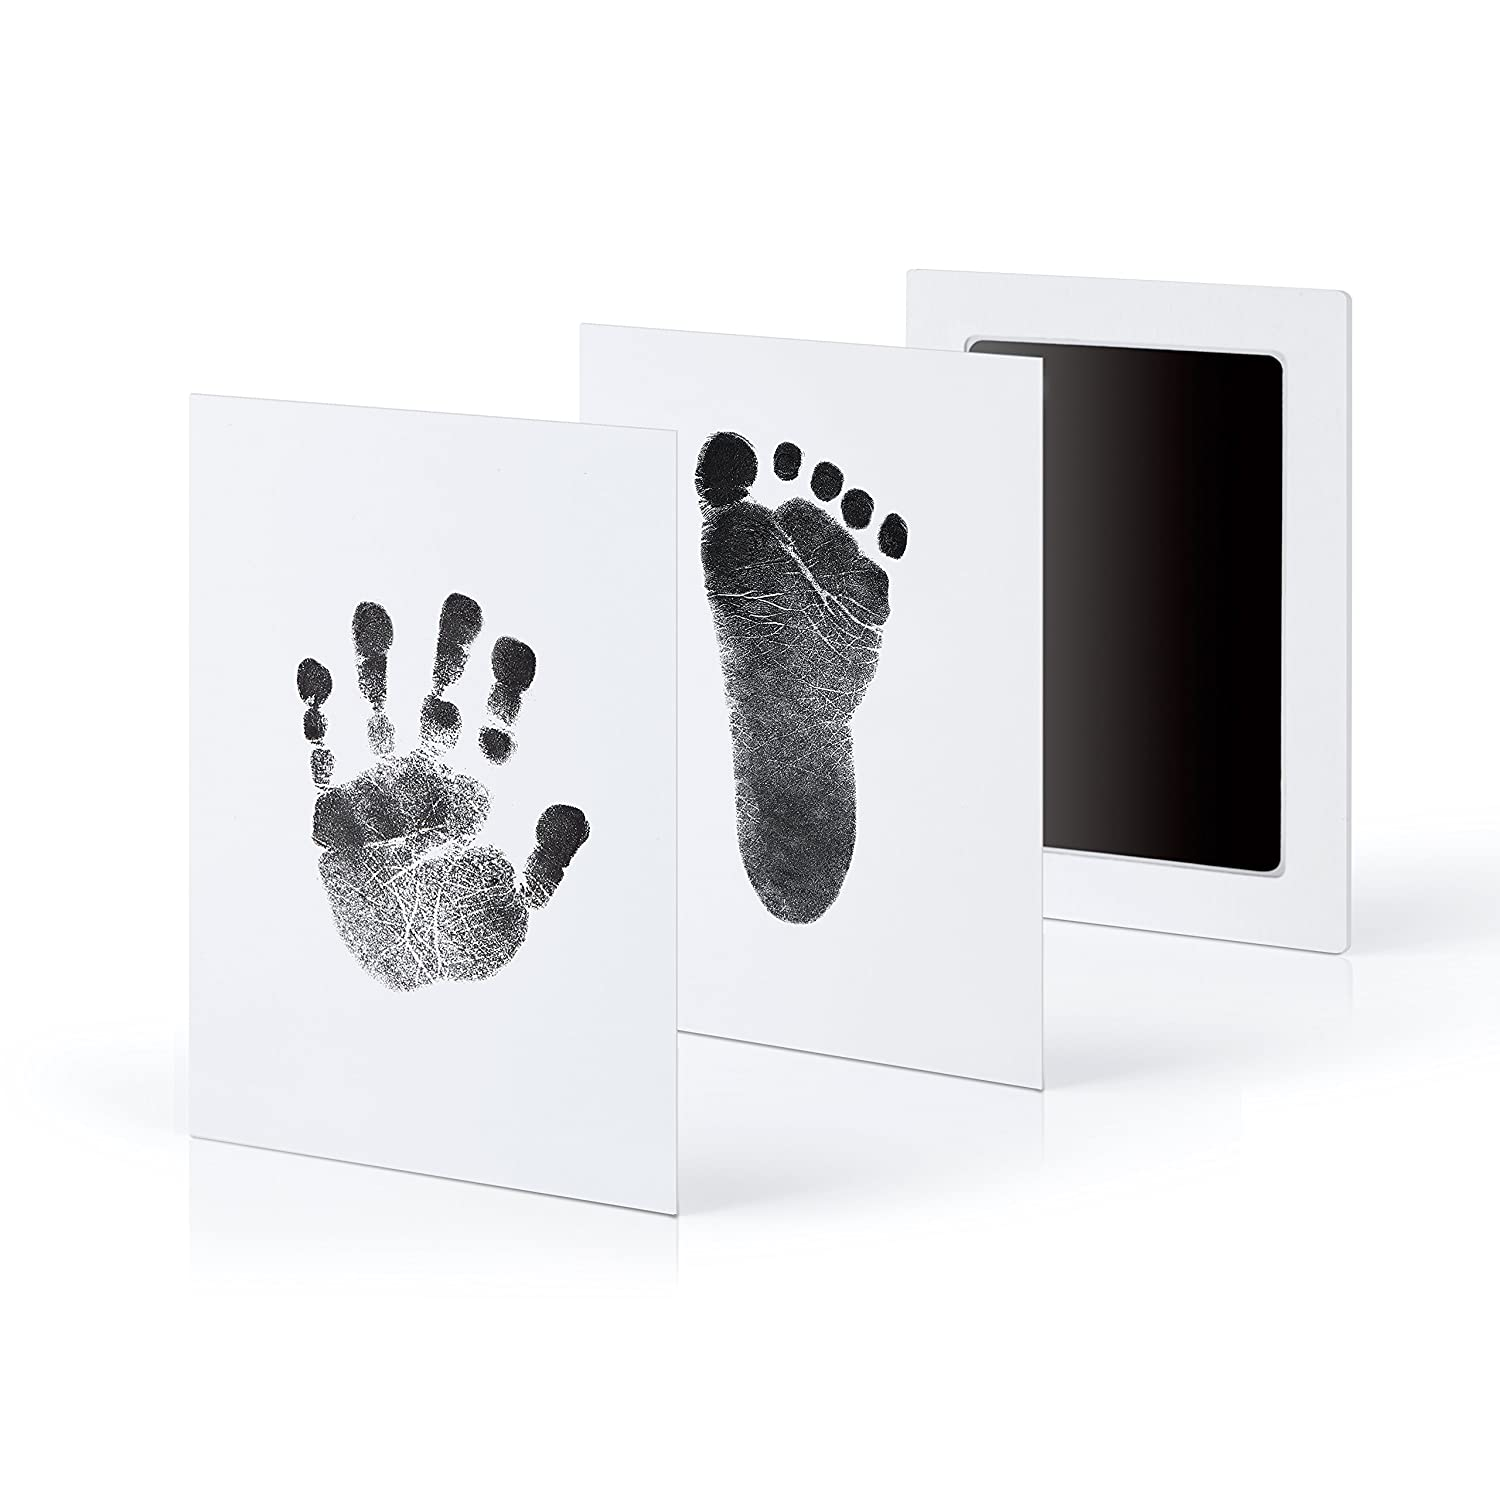 3-Pack Extra Large Baby Safe Inkless Touch Handprint and Footprint Ink Pads, 100% Non-Toxic & Mess Free minne minne01